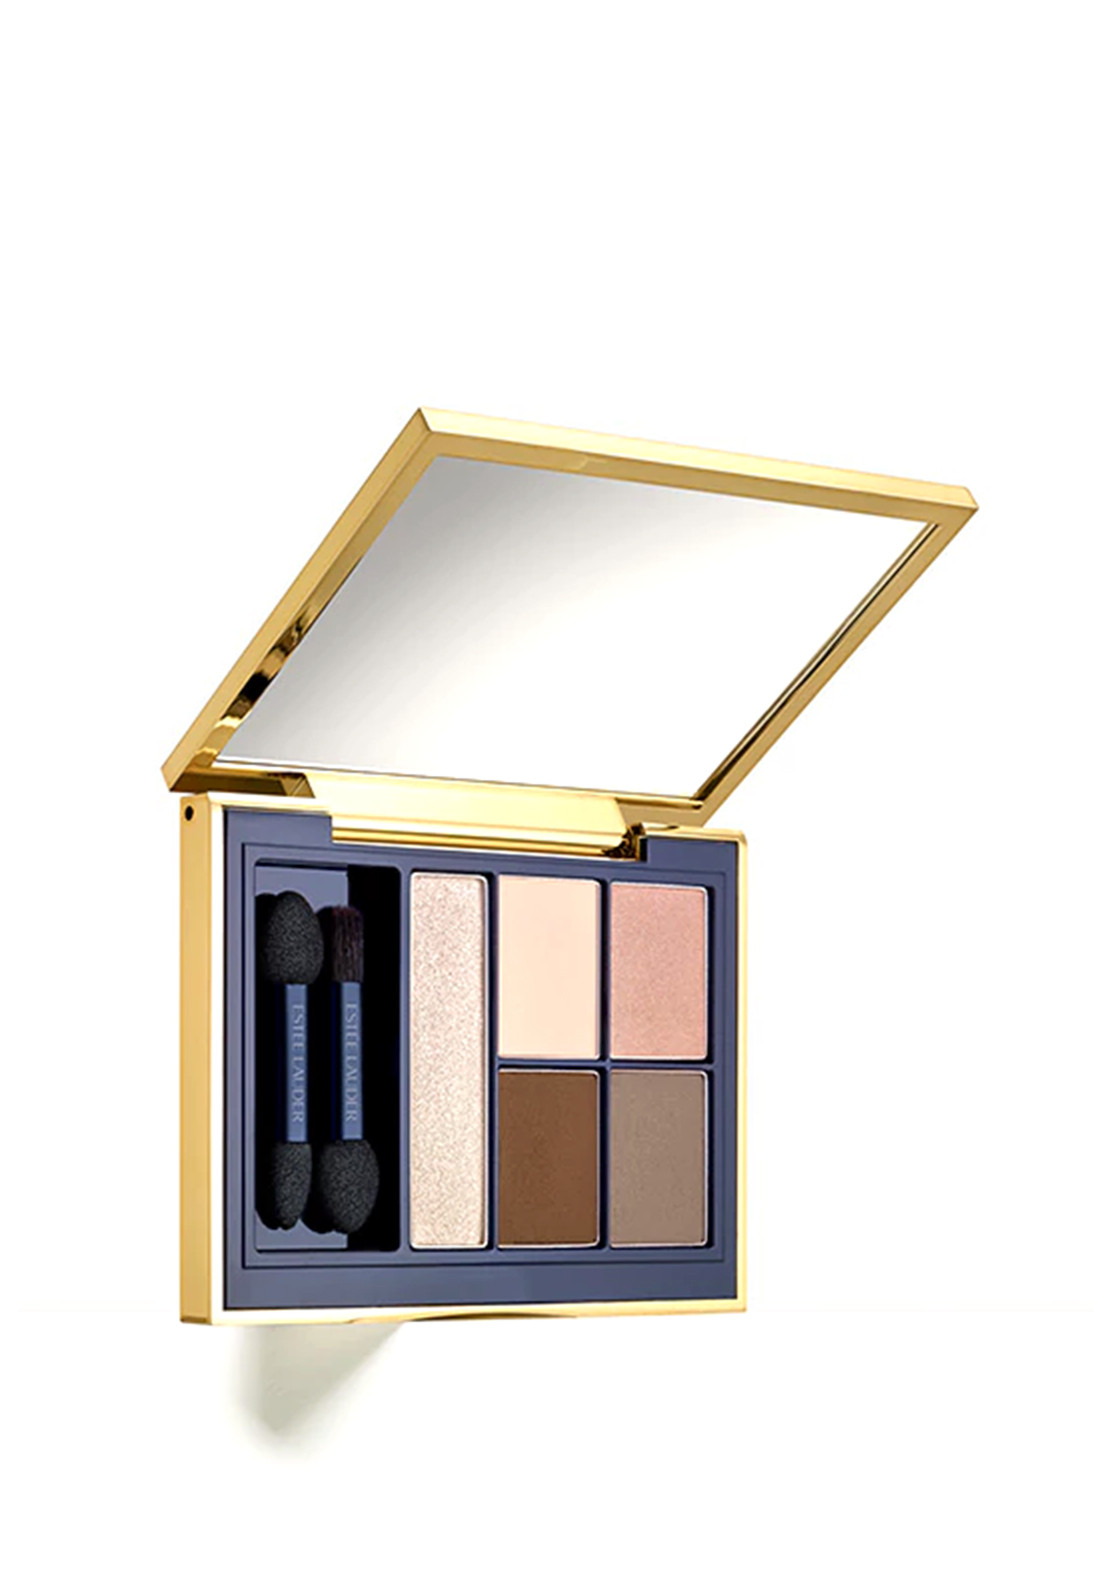 Estee Lauder Pure Colour Envy Eyeshadow Palette, Provocative Petal